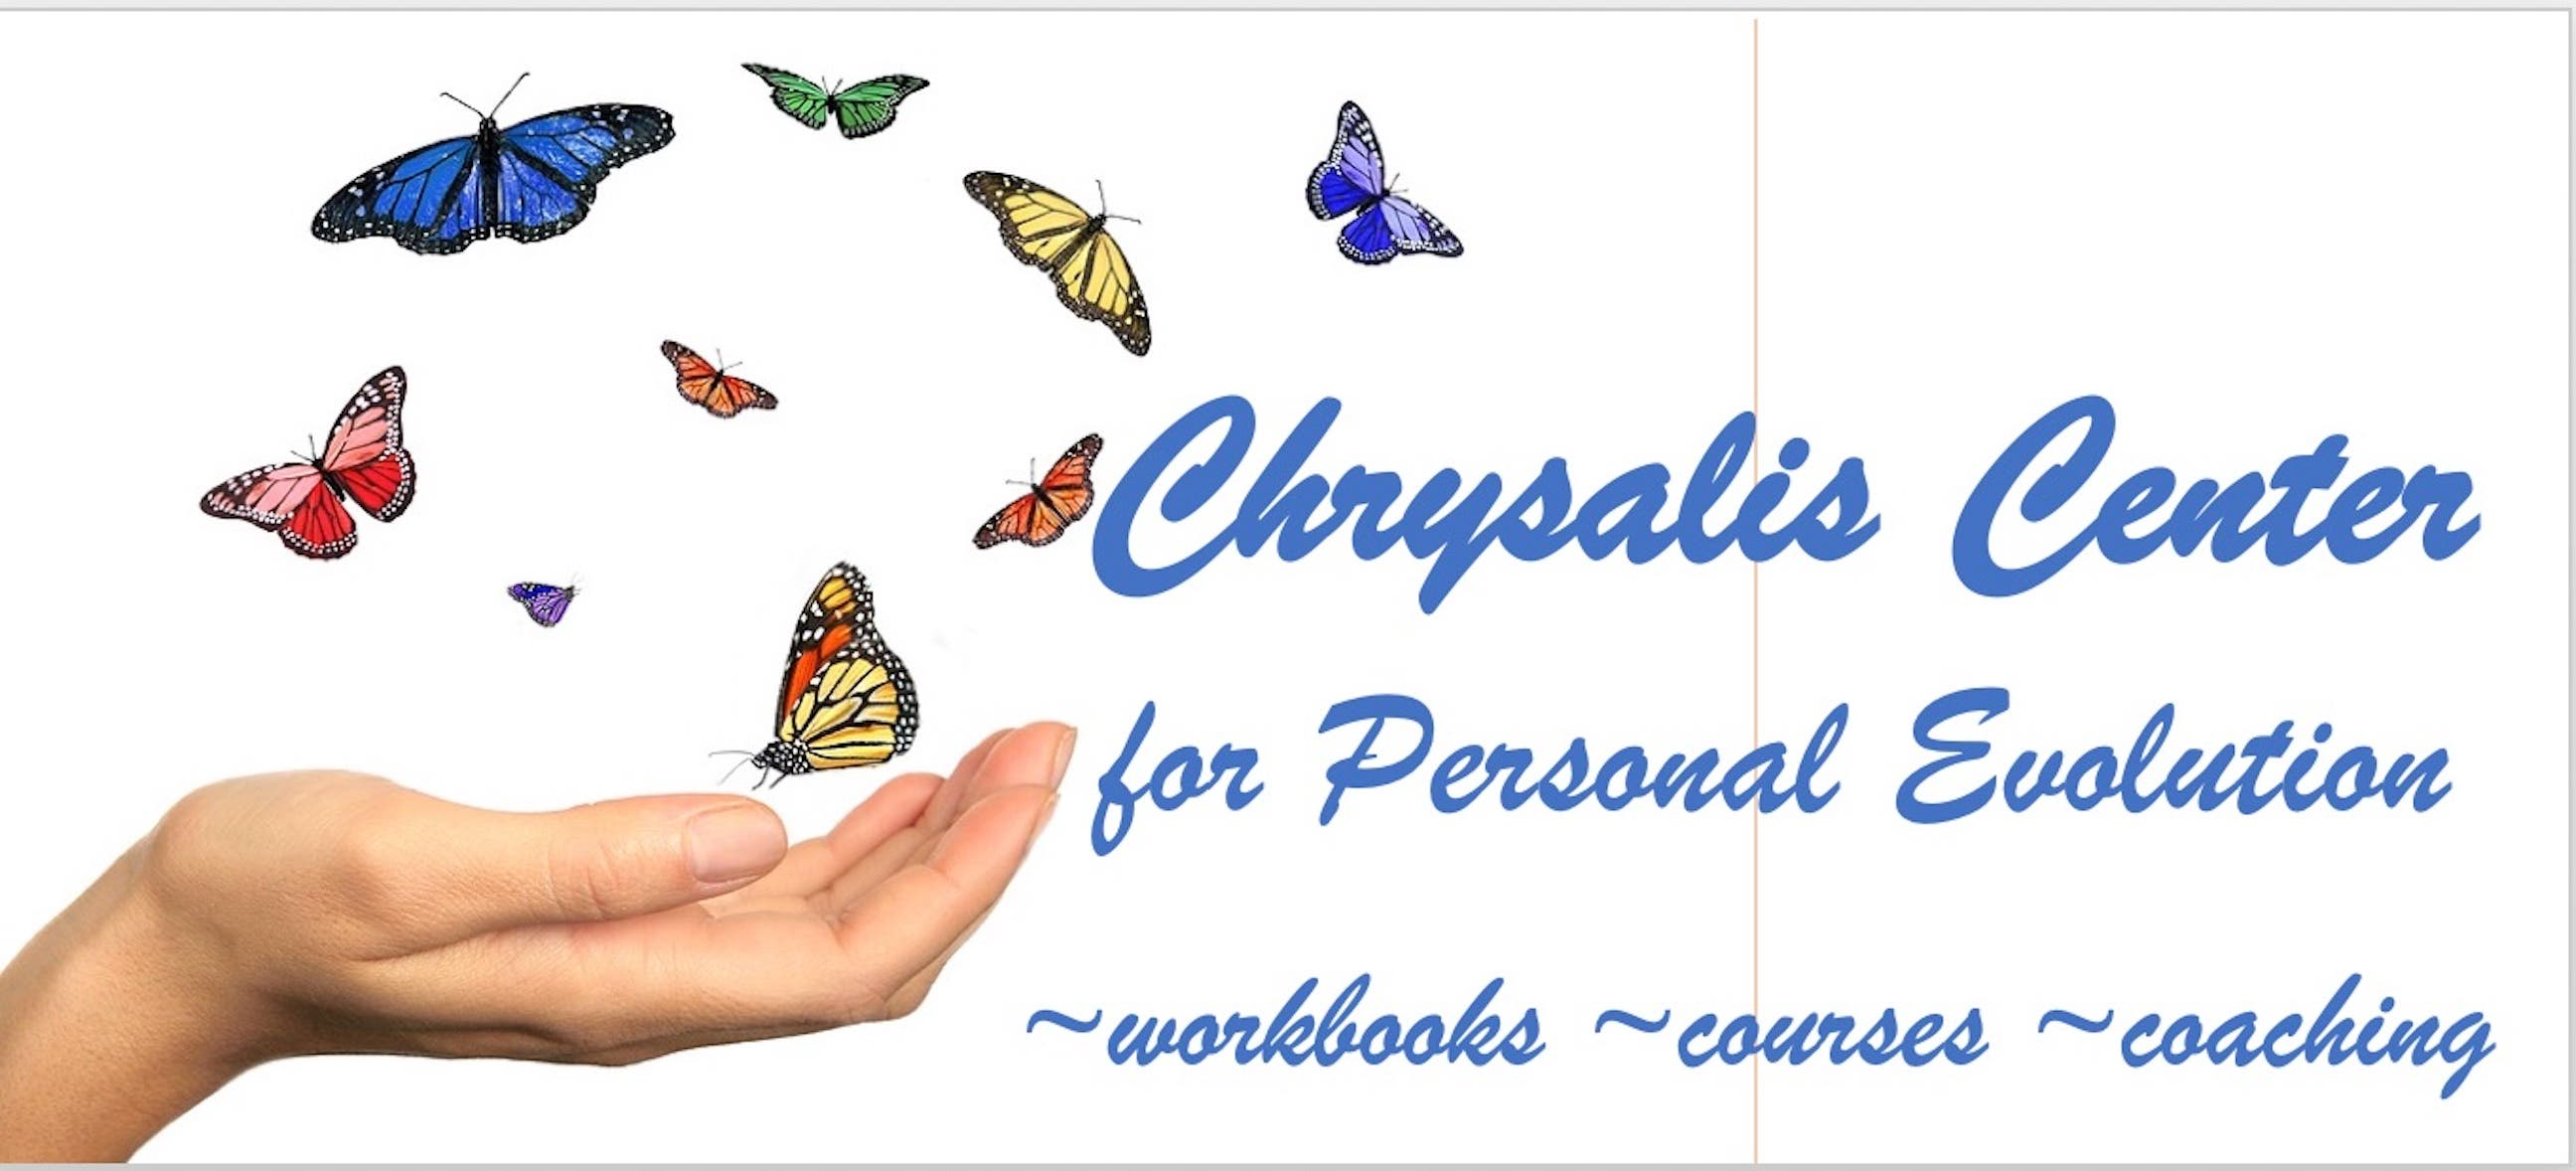 Chrysalis Center for Change online courses